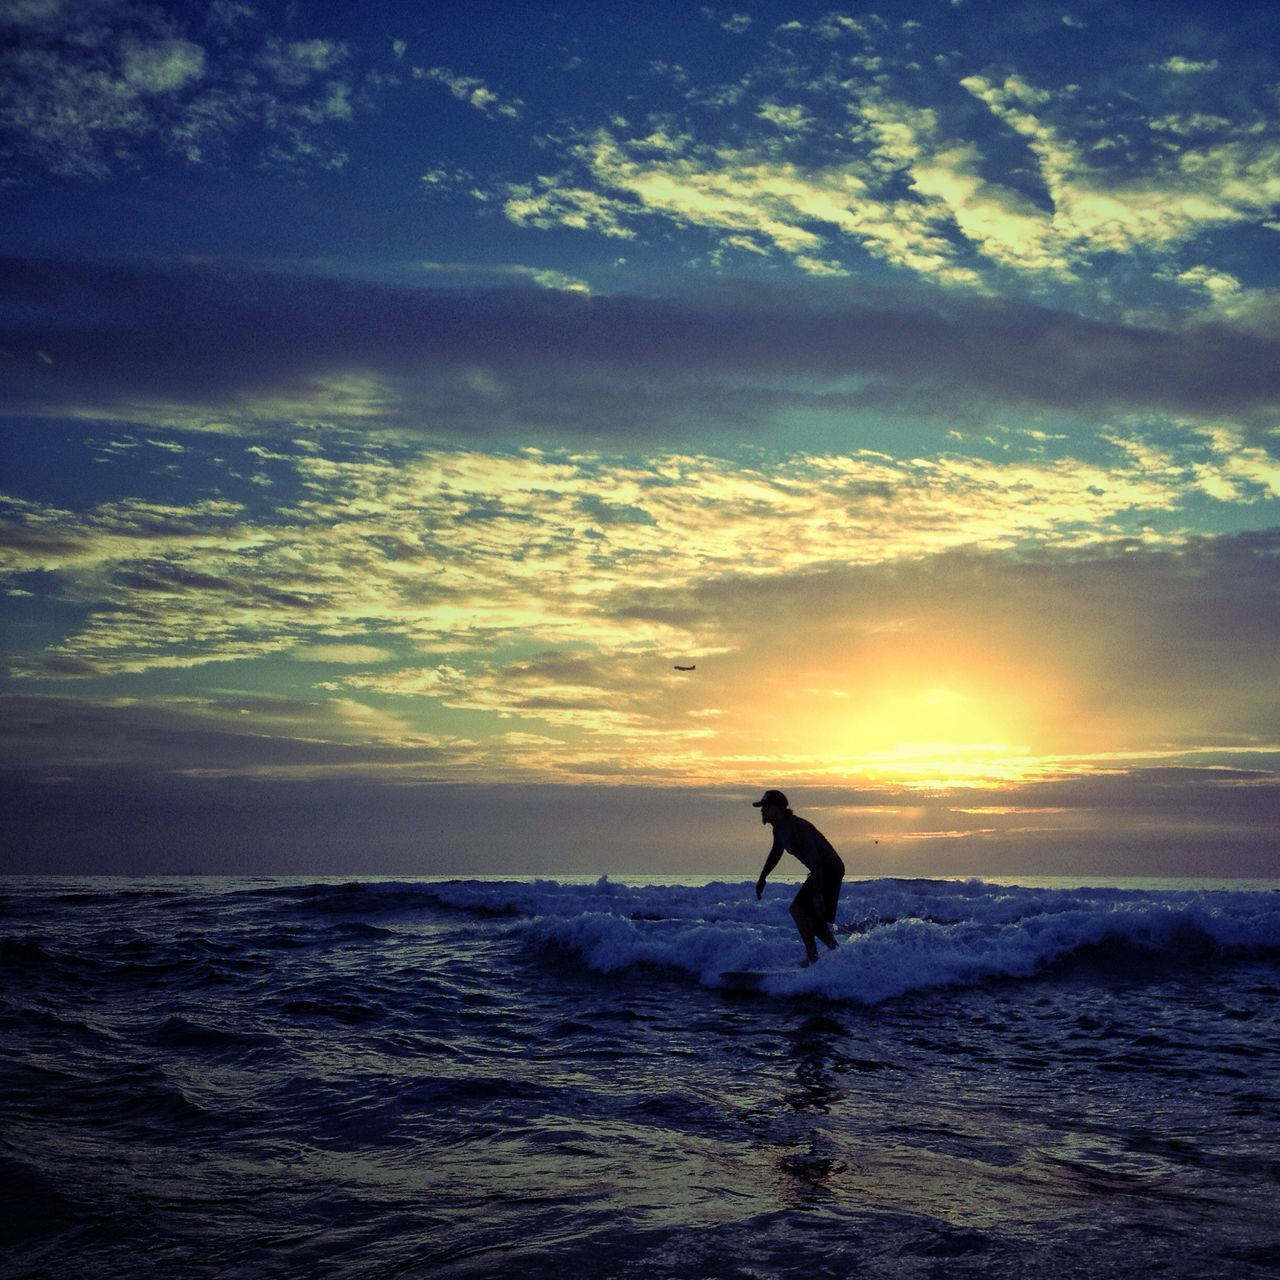 Side view of a silhouette person surfing in the sea